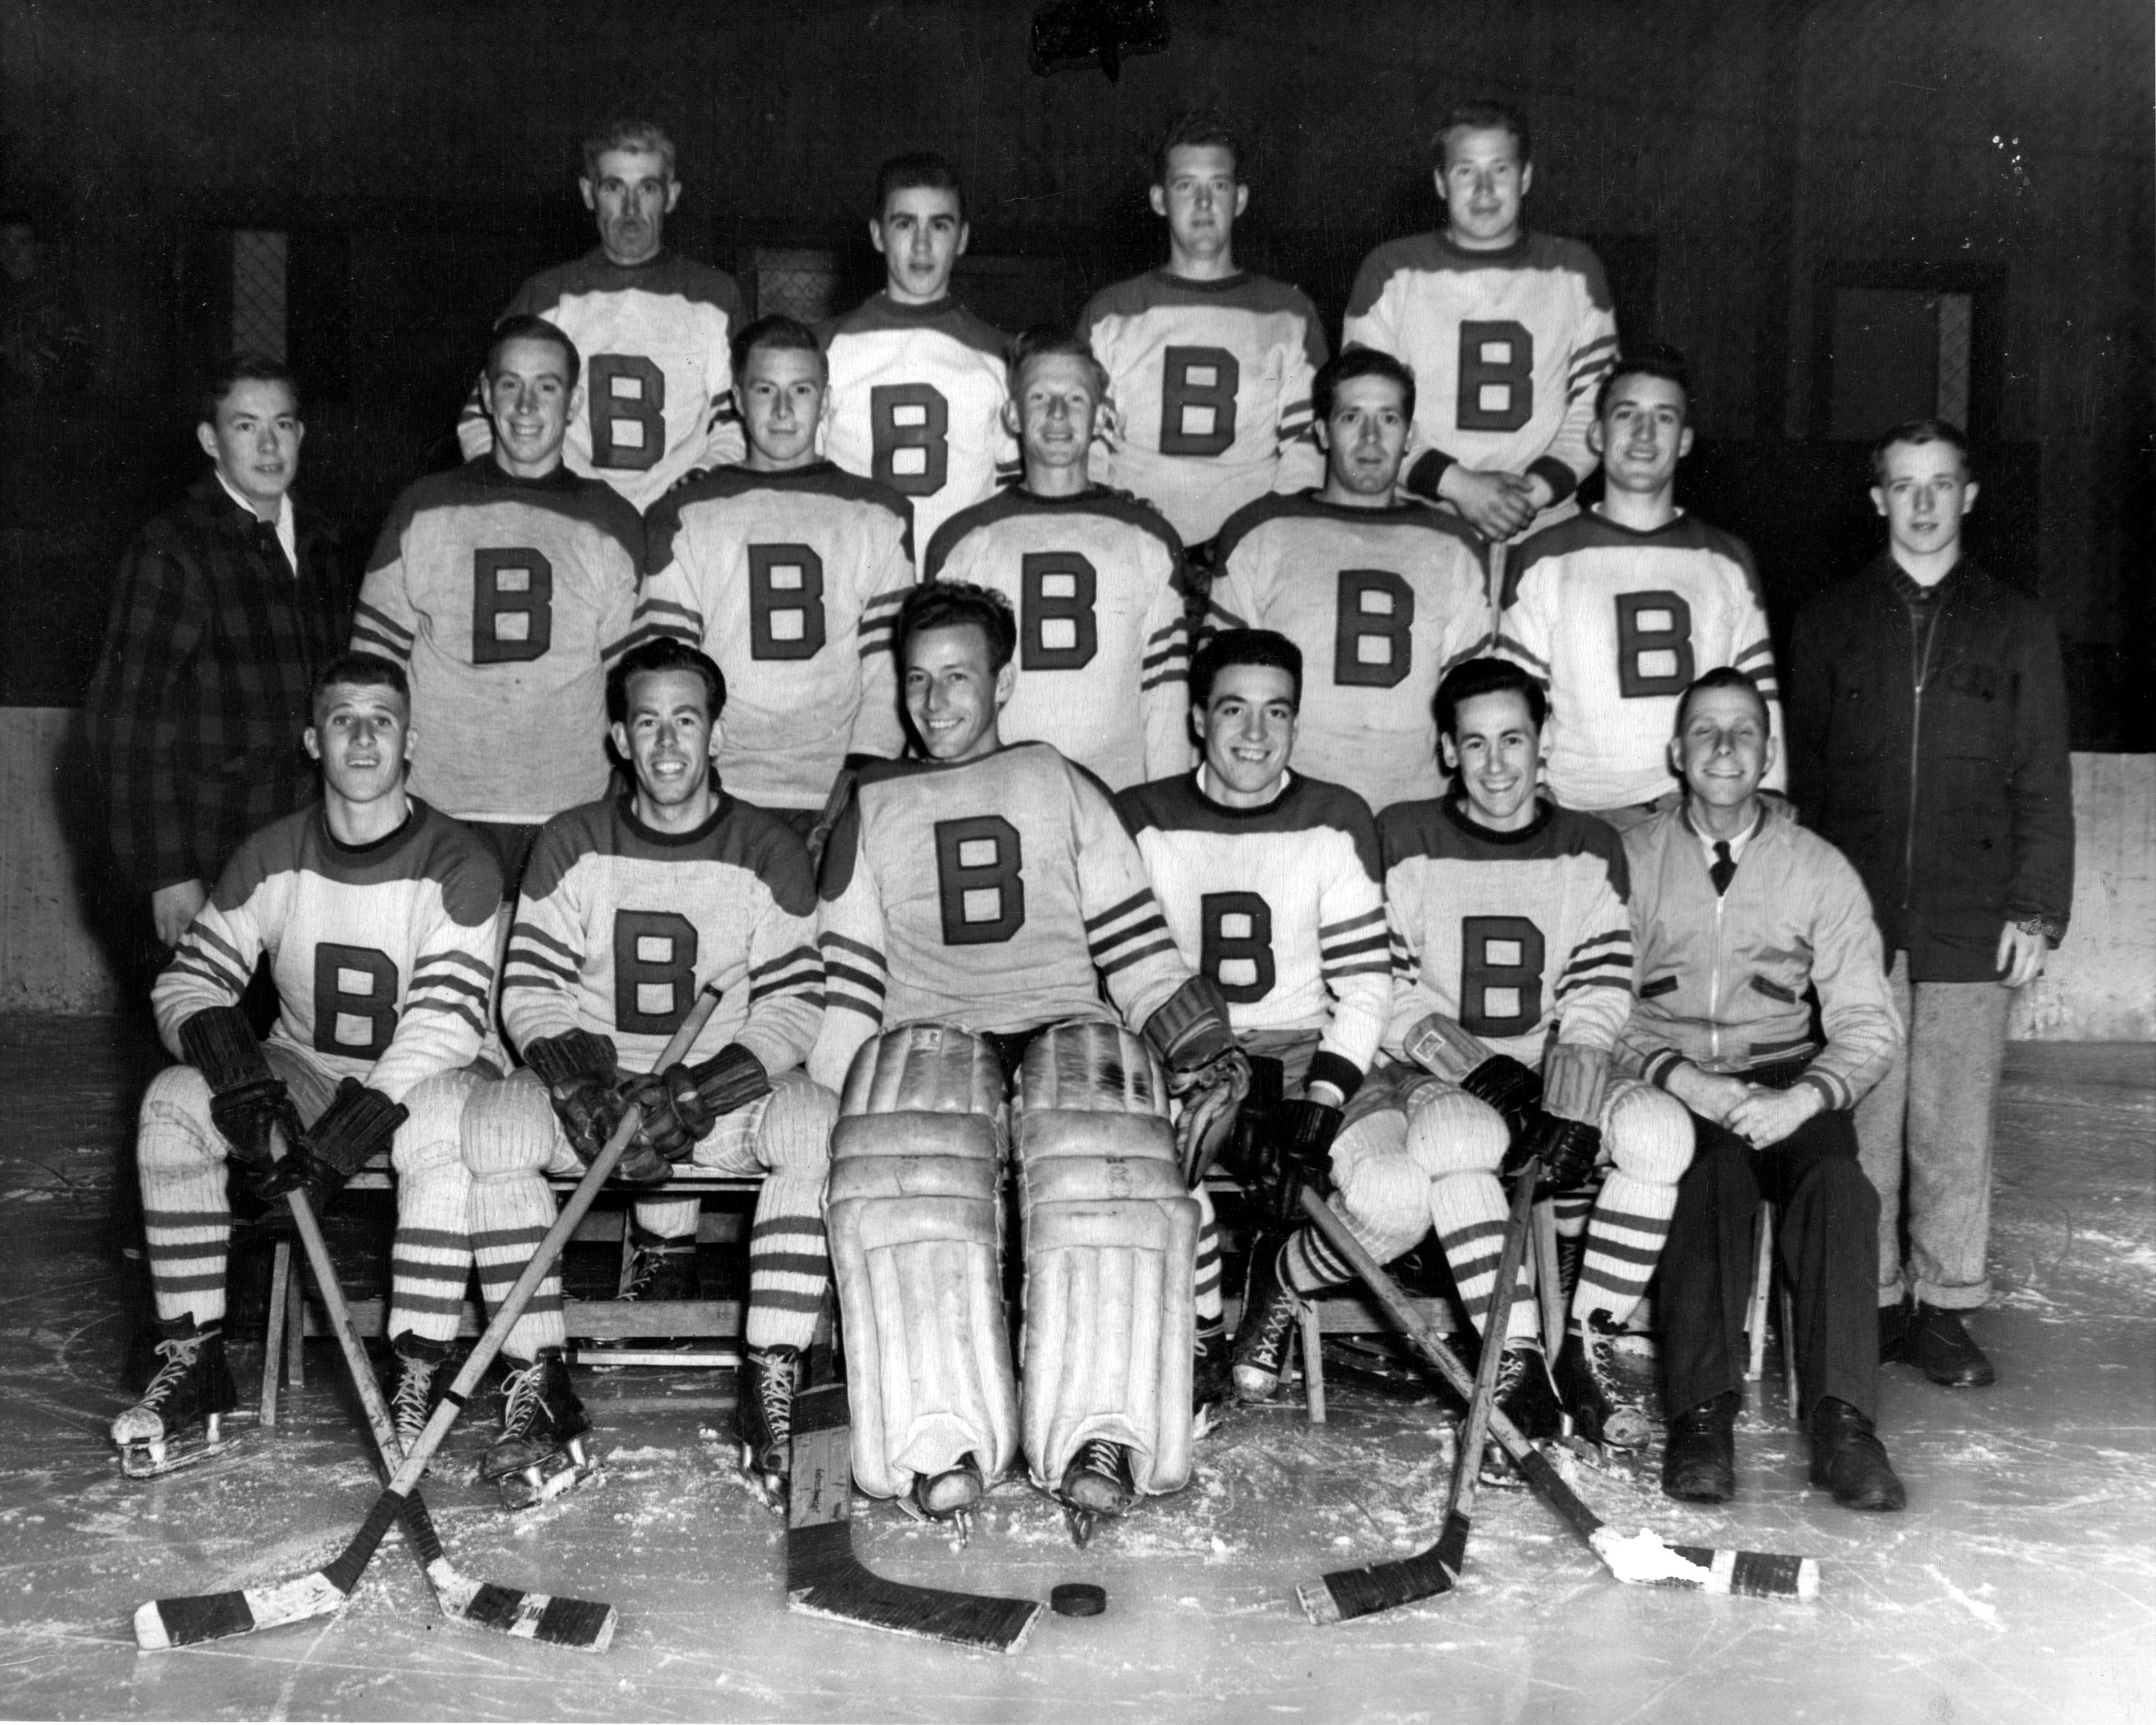 Hockey team photograph shows coaches players wearing white team jerseys with a large B on the front.